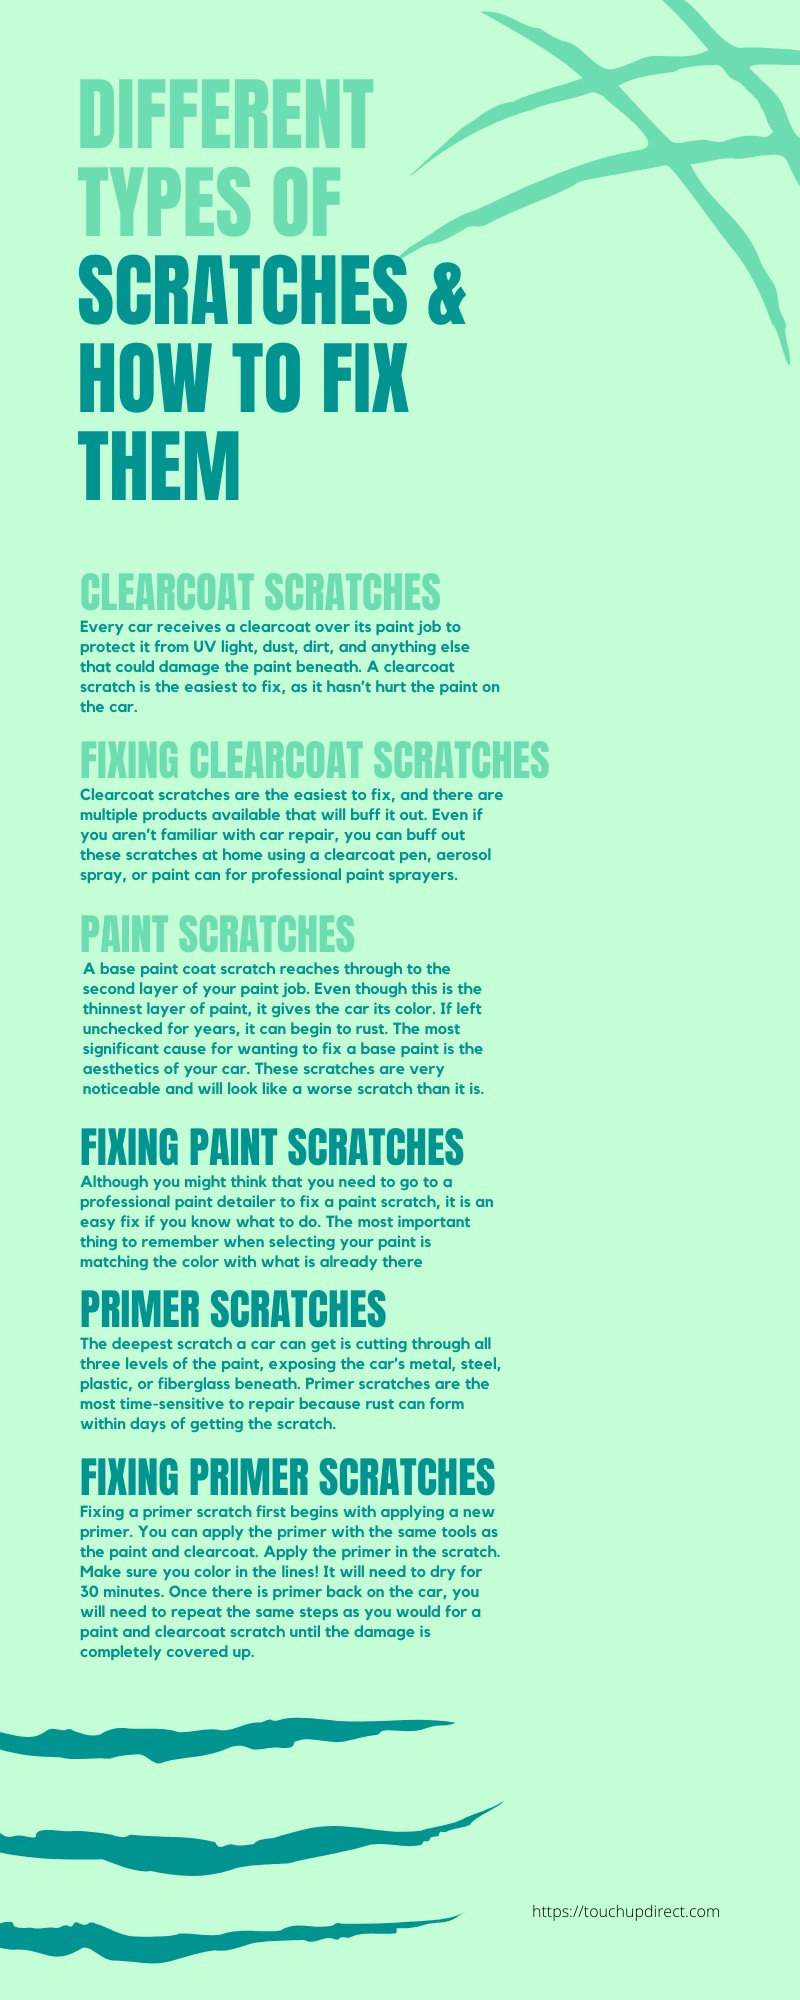 Different Types of Scratches & How To Fix Them